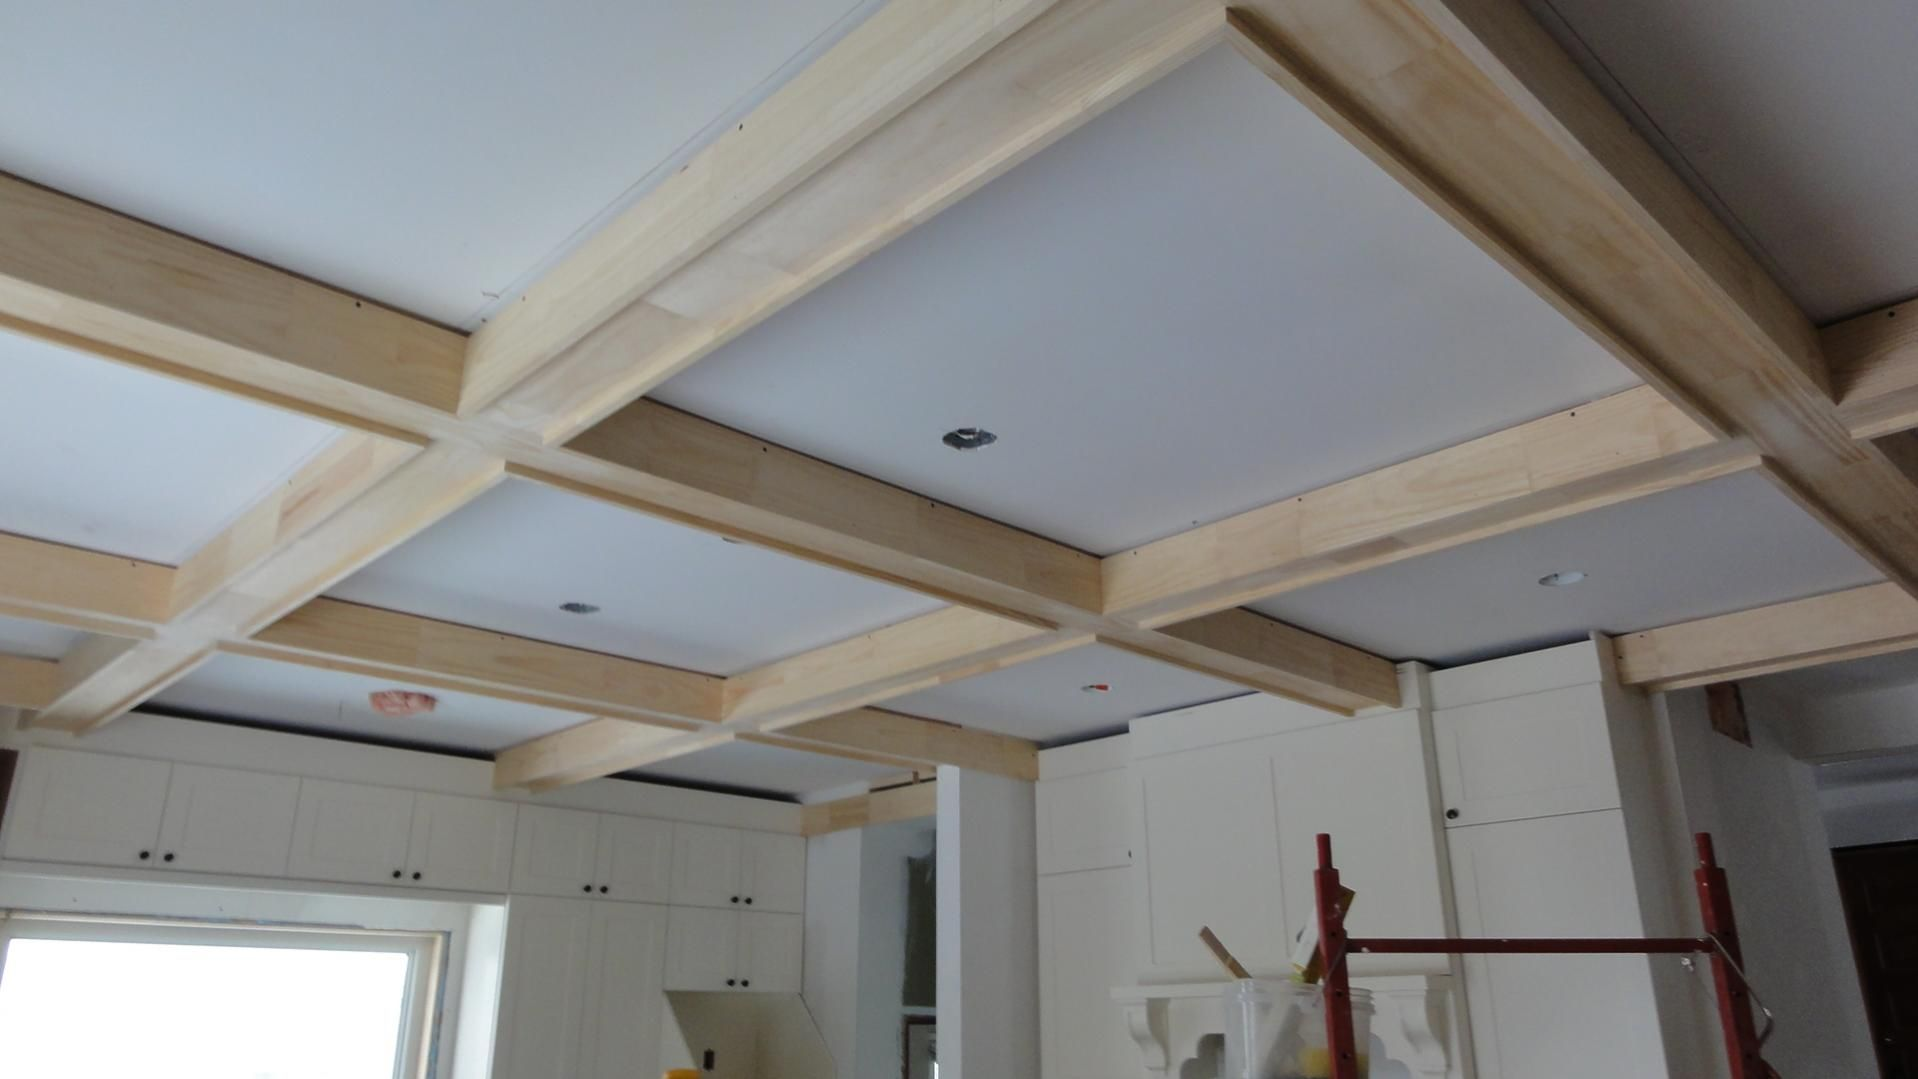 Box Beam Ceiling House Pinterest Ceiling Beams And Coffer - Cornice crown moulding toronto wainscoting coffered ceiling